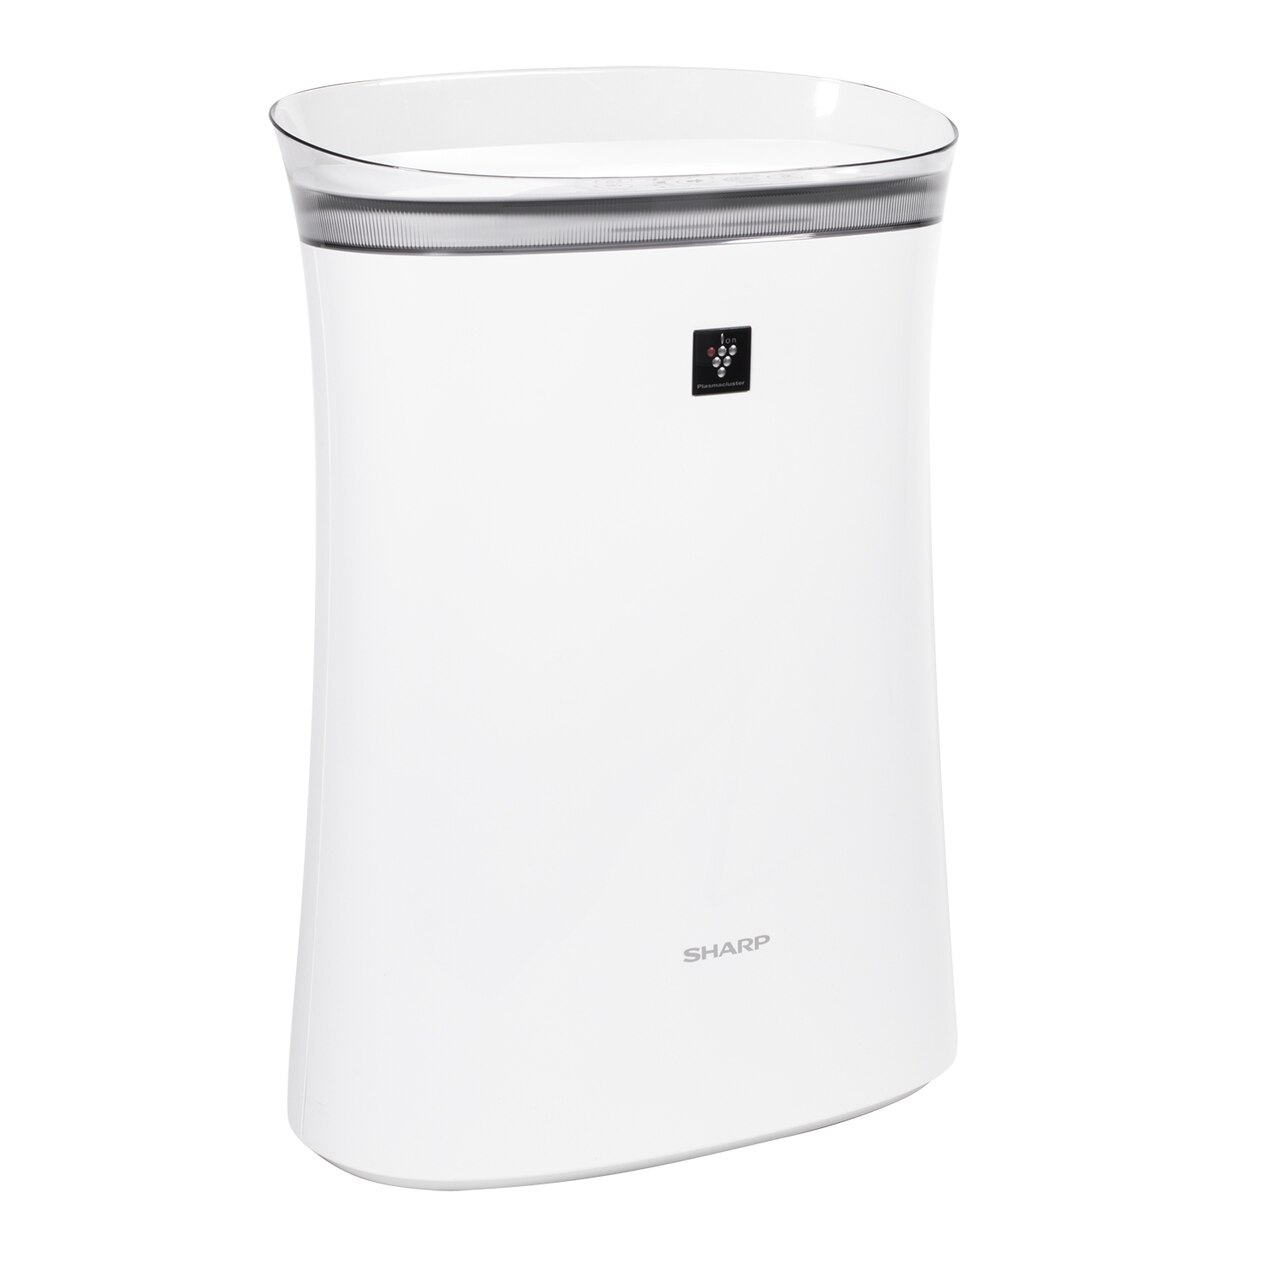 Sharp True HEPA Air Purifier for Medium-Sized Rooms (FPK50UW)- right side view